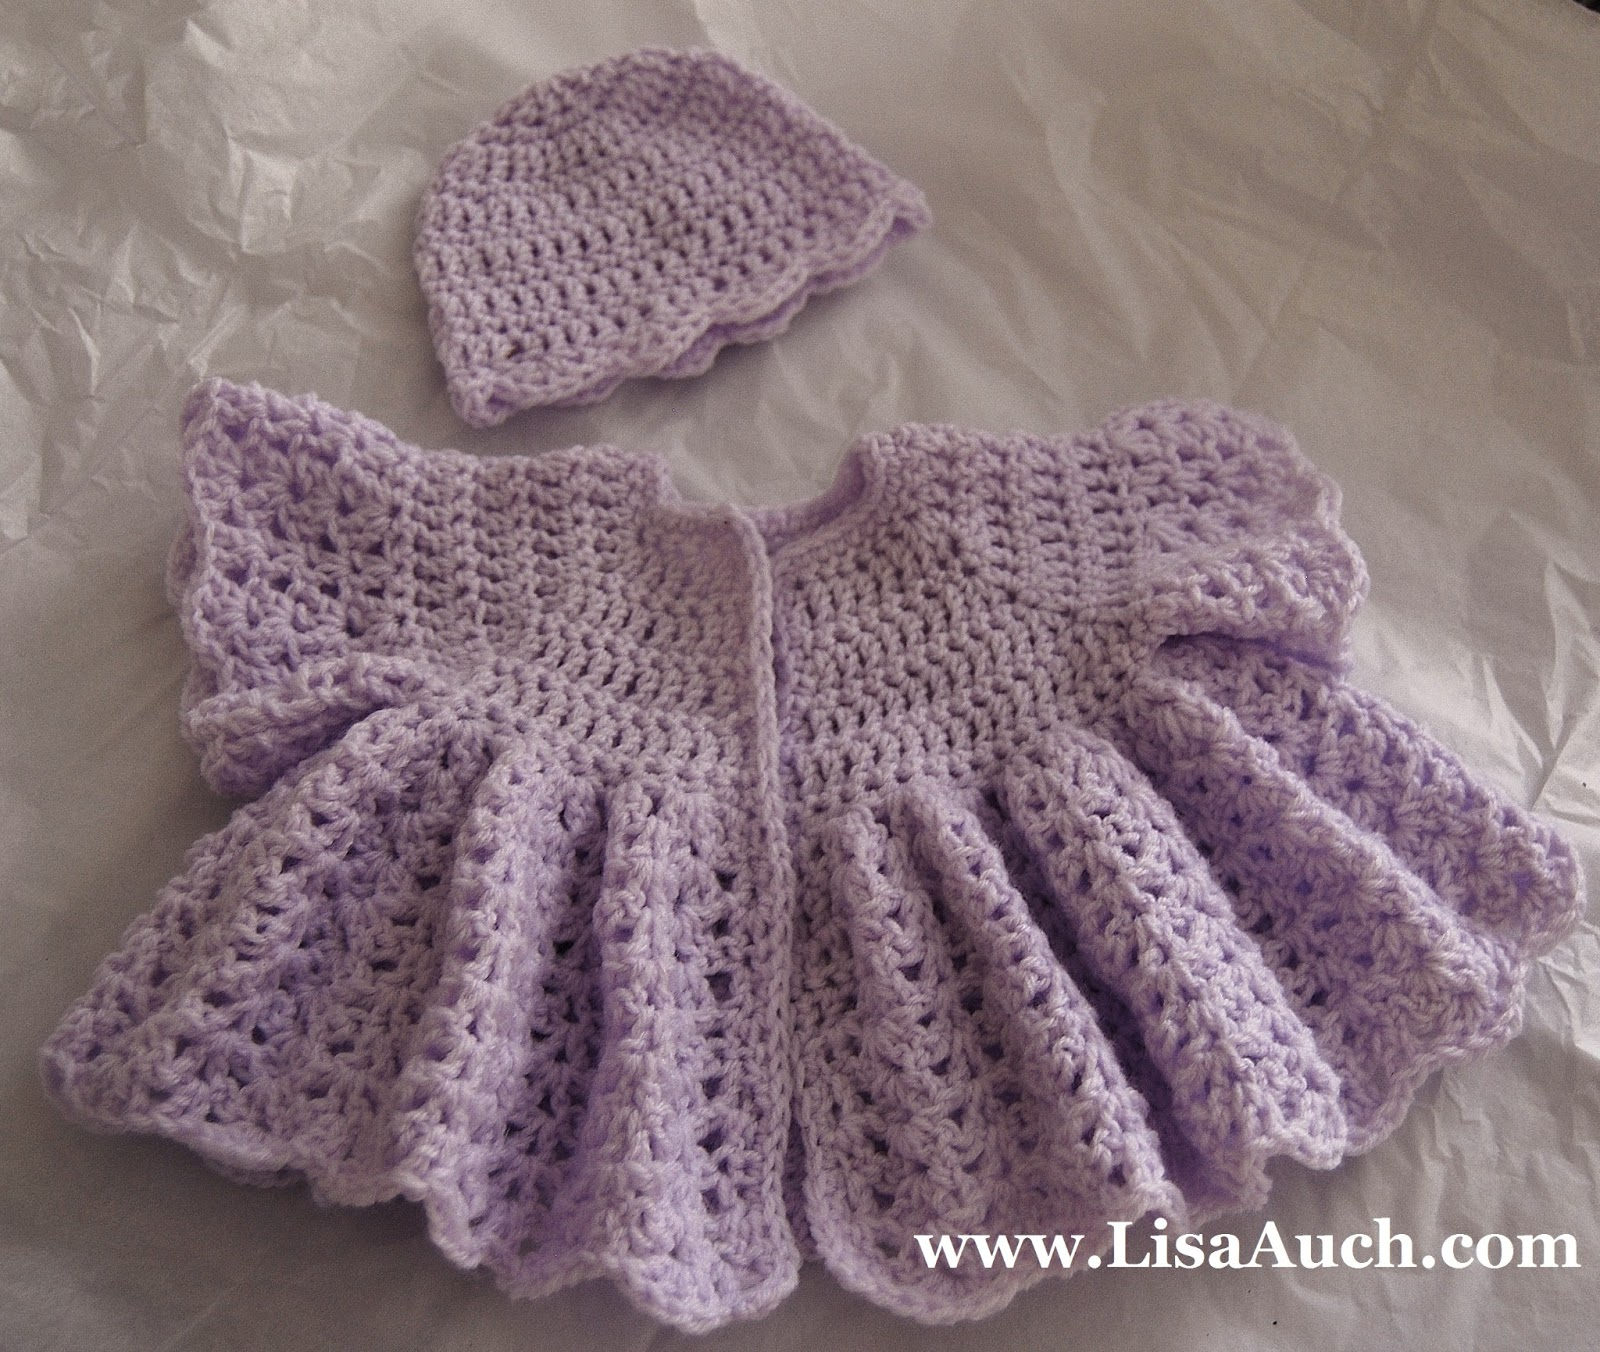 6162a85cd632 Free Crochet Patterns and Designs by LisaAuch  Free Crochet Pattern ...